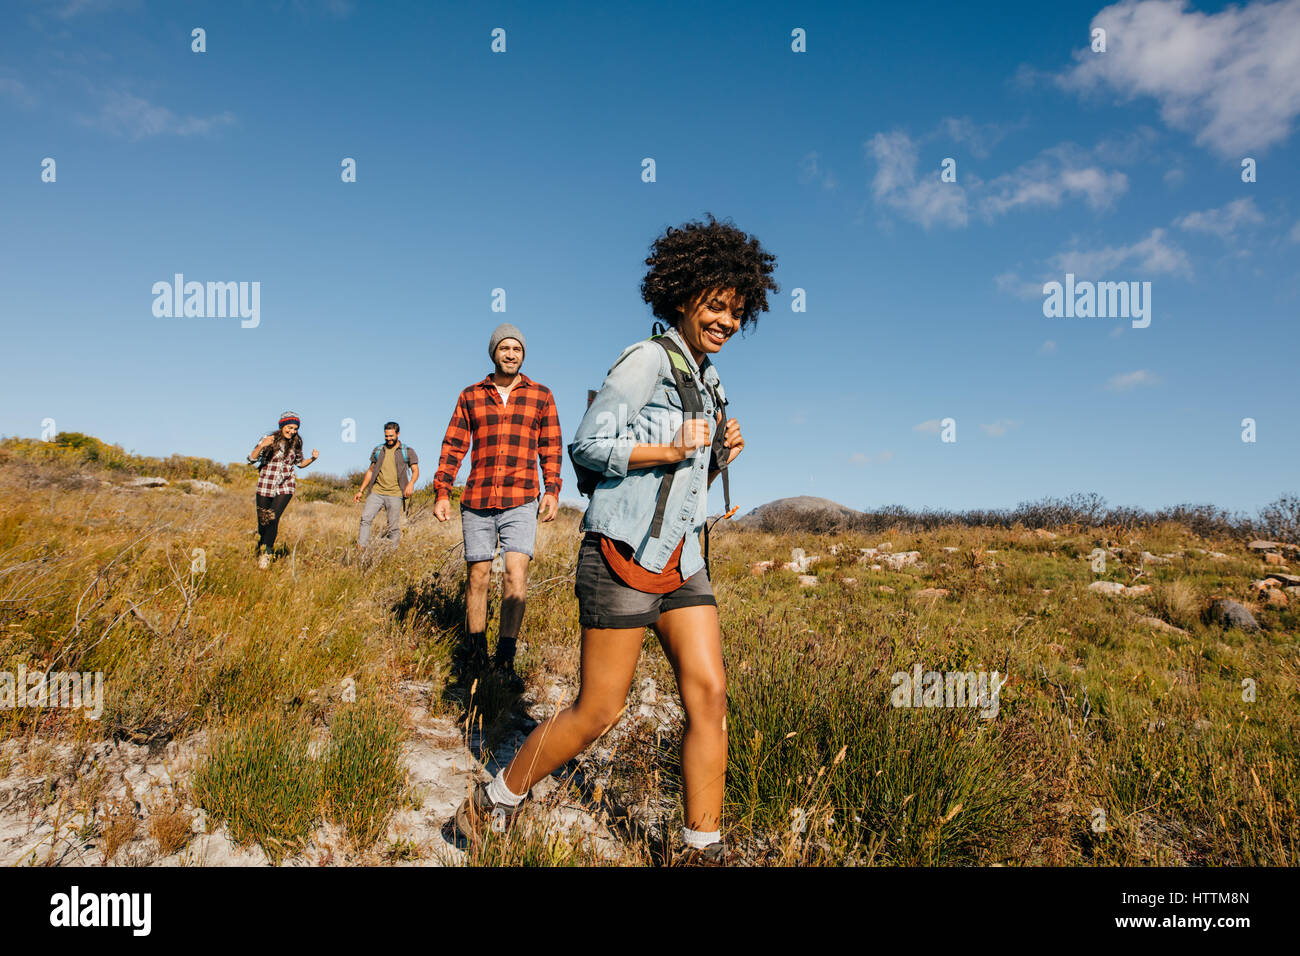 Group of young people on a hike through countryside together. Young friends hiking in nature. - Stock Image